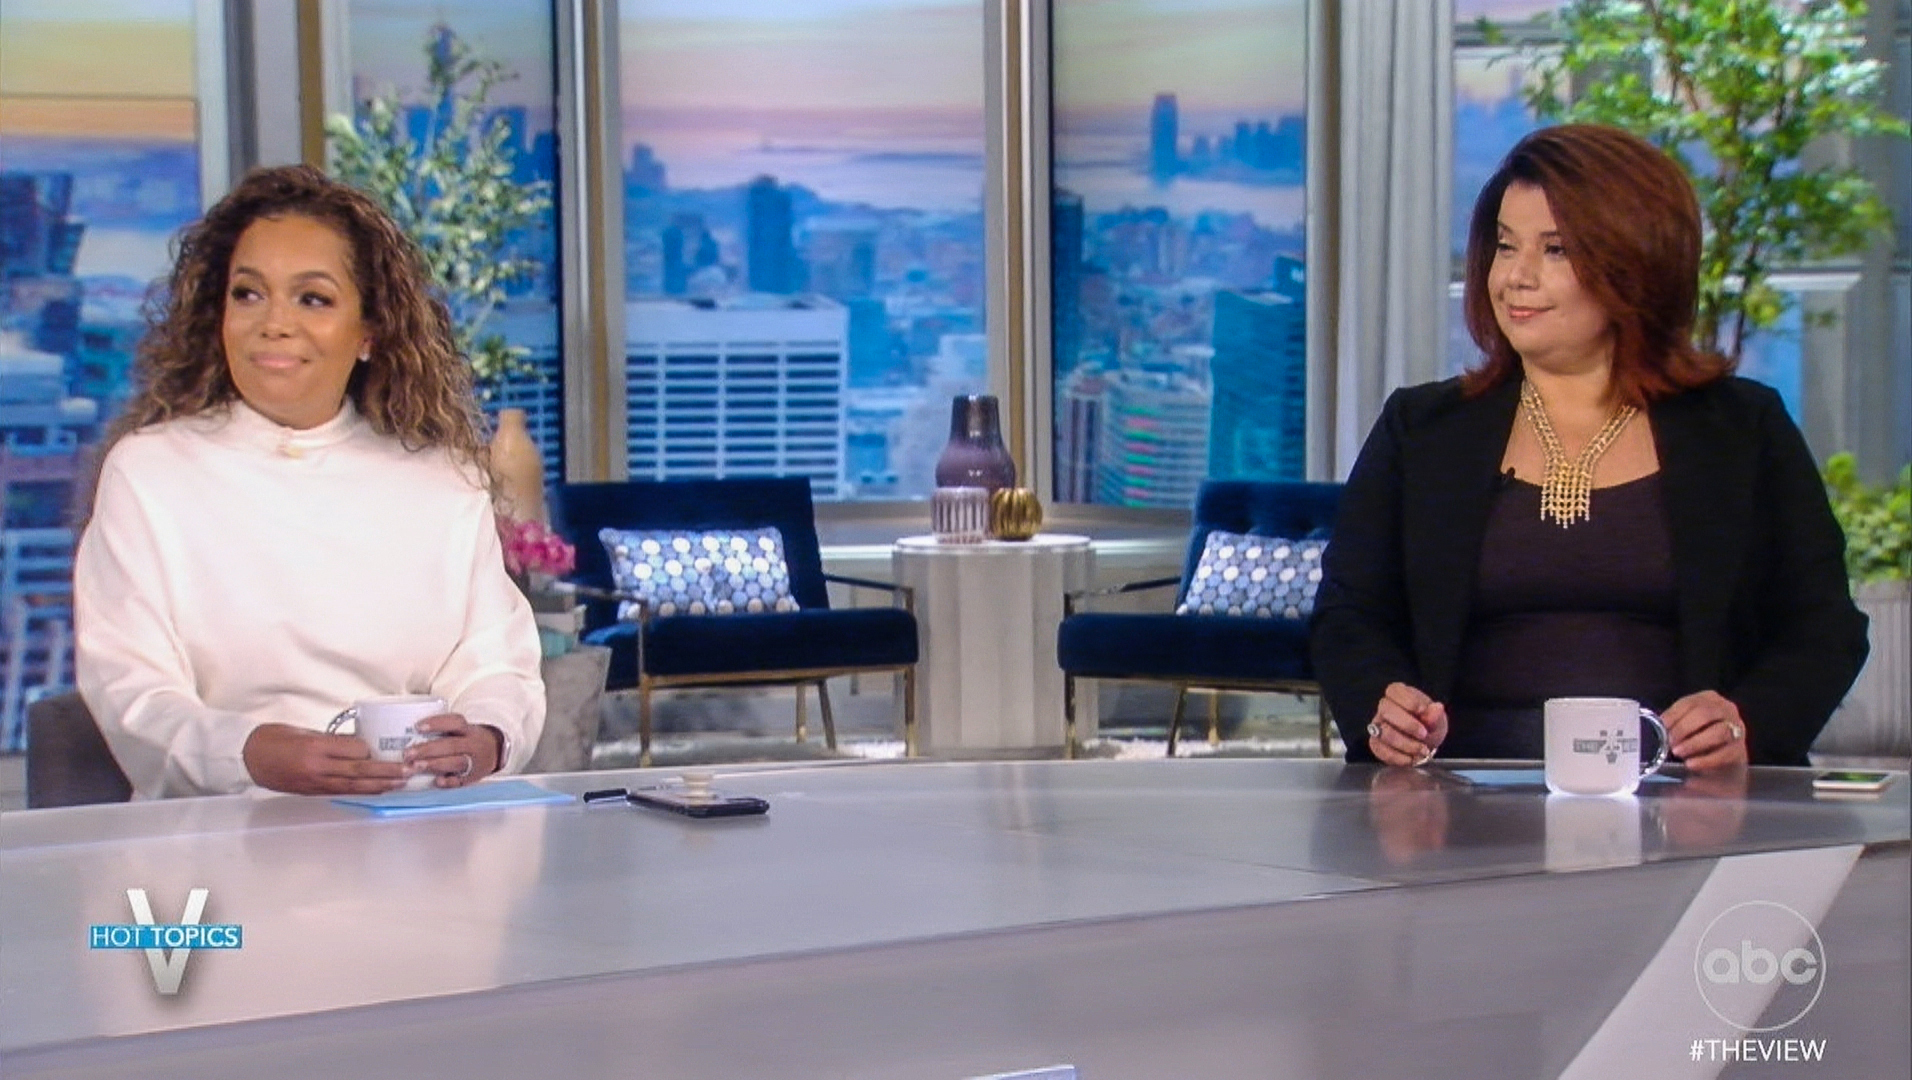 'The View' hosts say they had false positive Covid tests during Kamala Harris interview